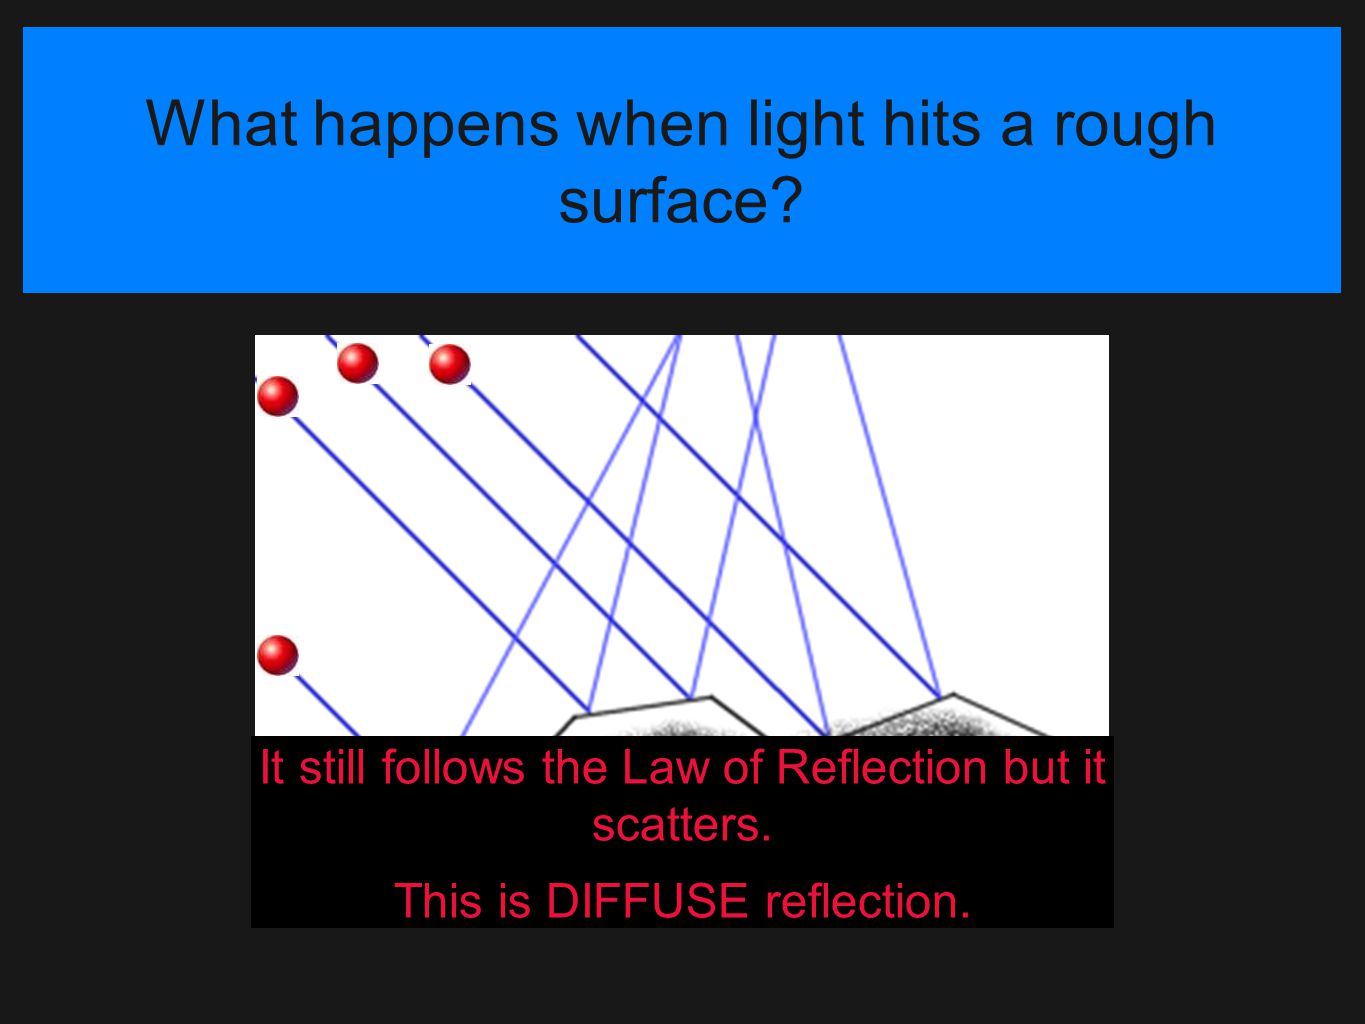 What happens when light hits a rough surface? It still follows the Law of Reflection but it scatters. This is DIFFUSE reflection.